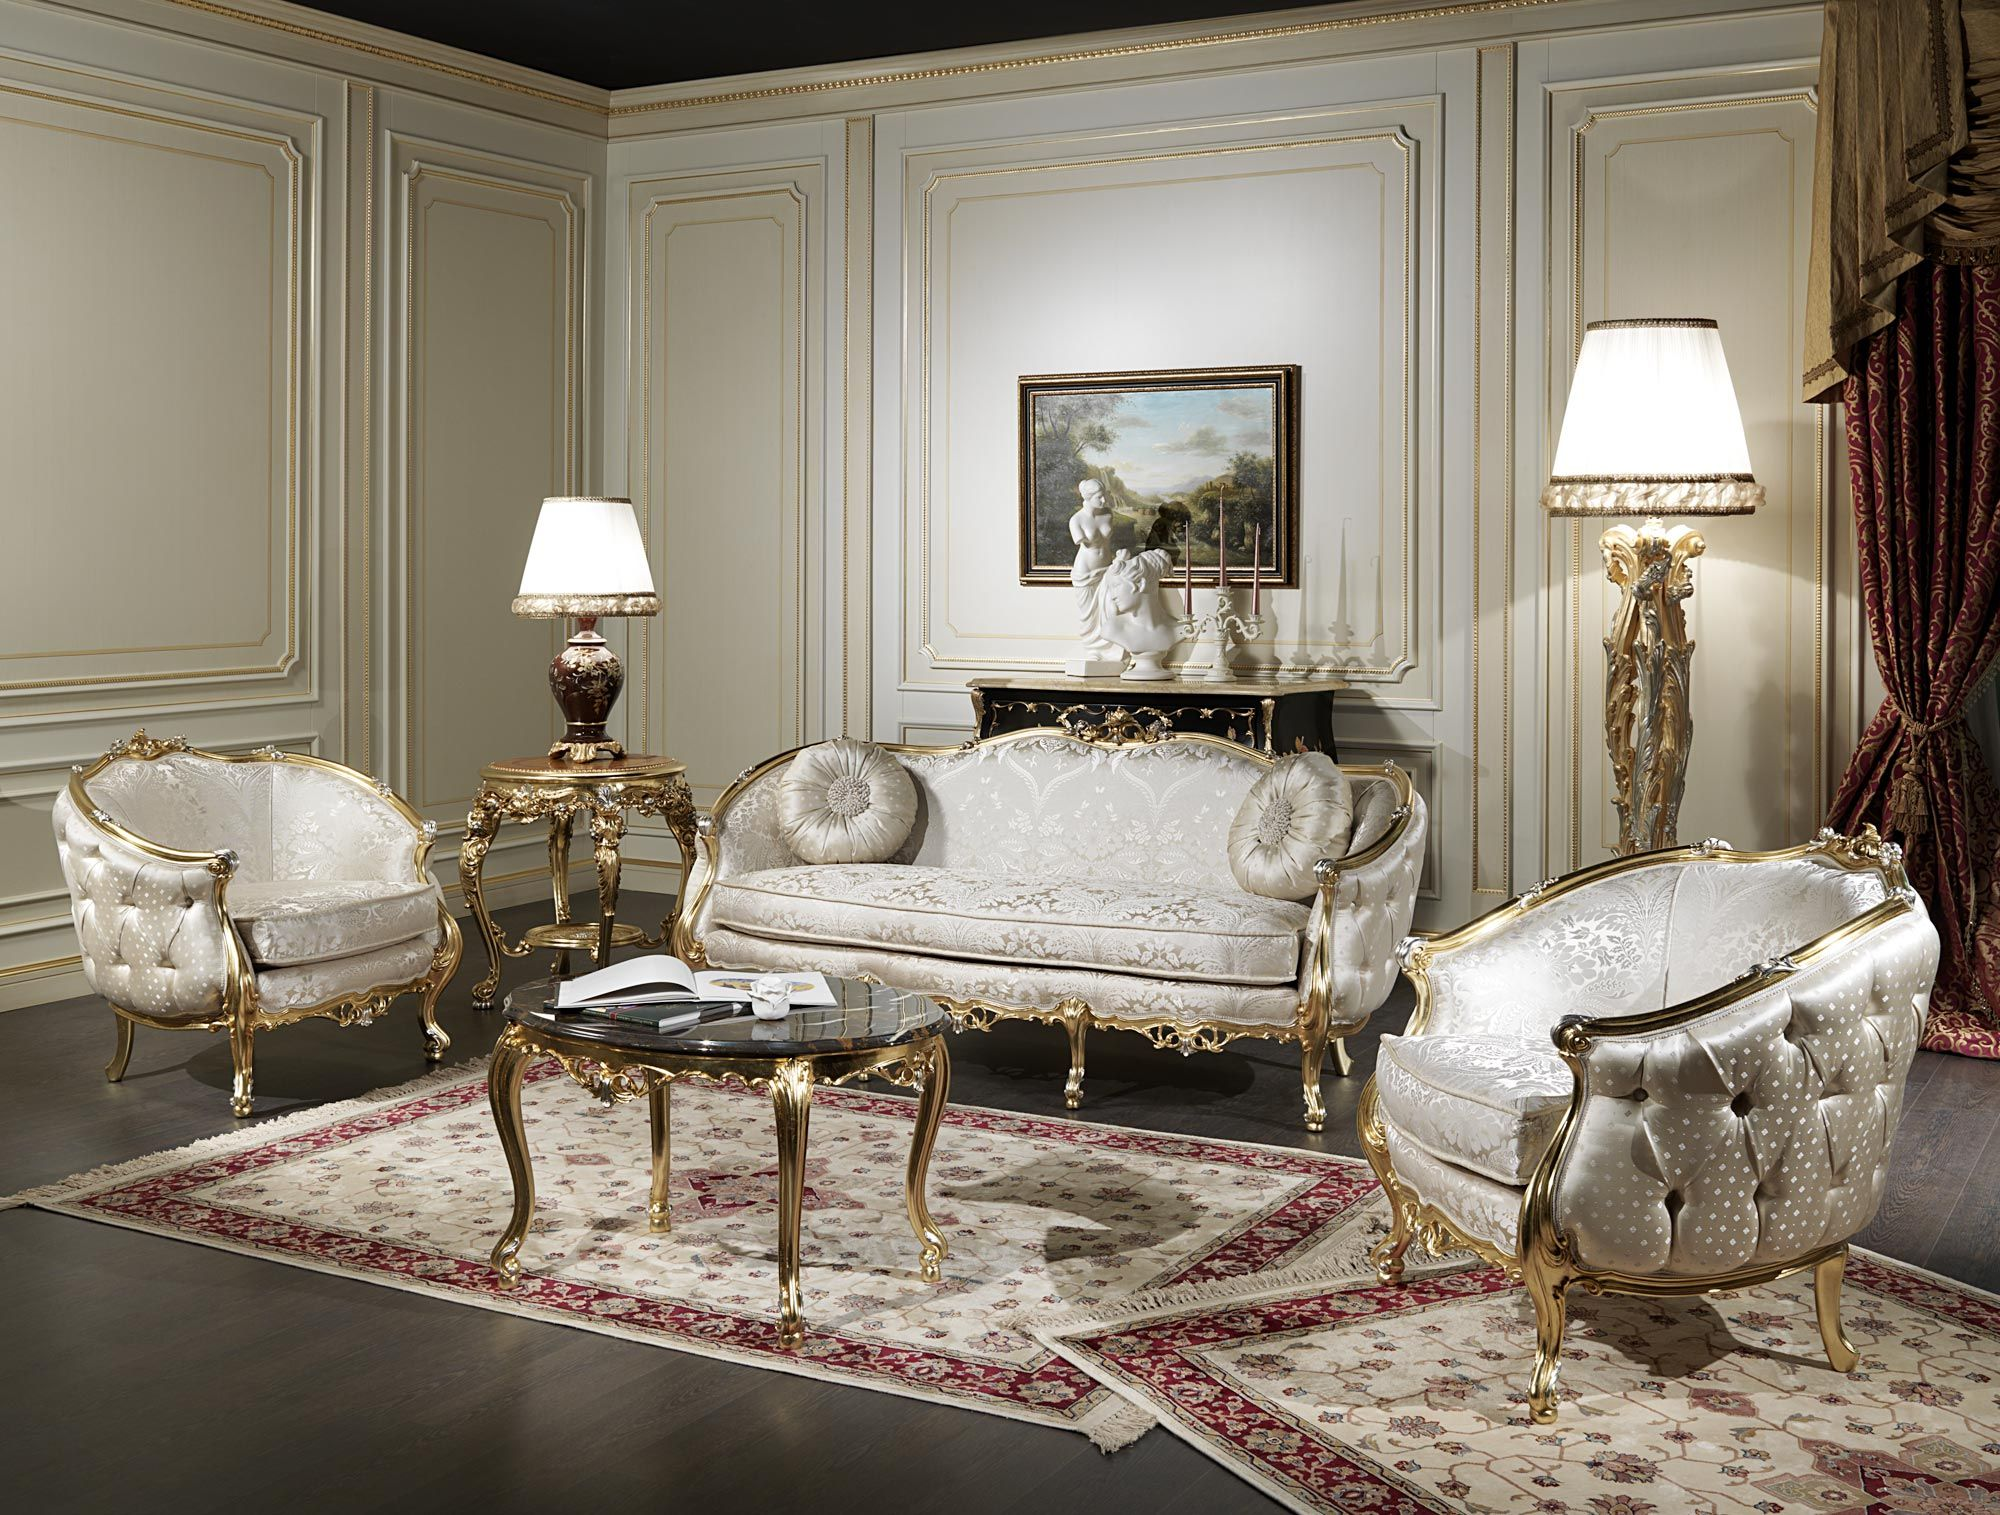 Italian classic living room of the Venezia collection The rich